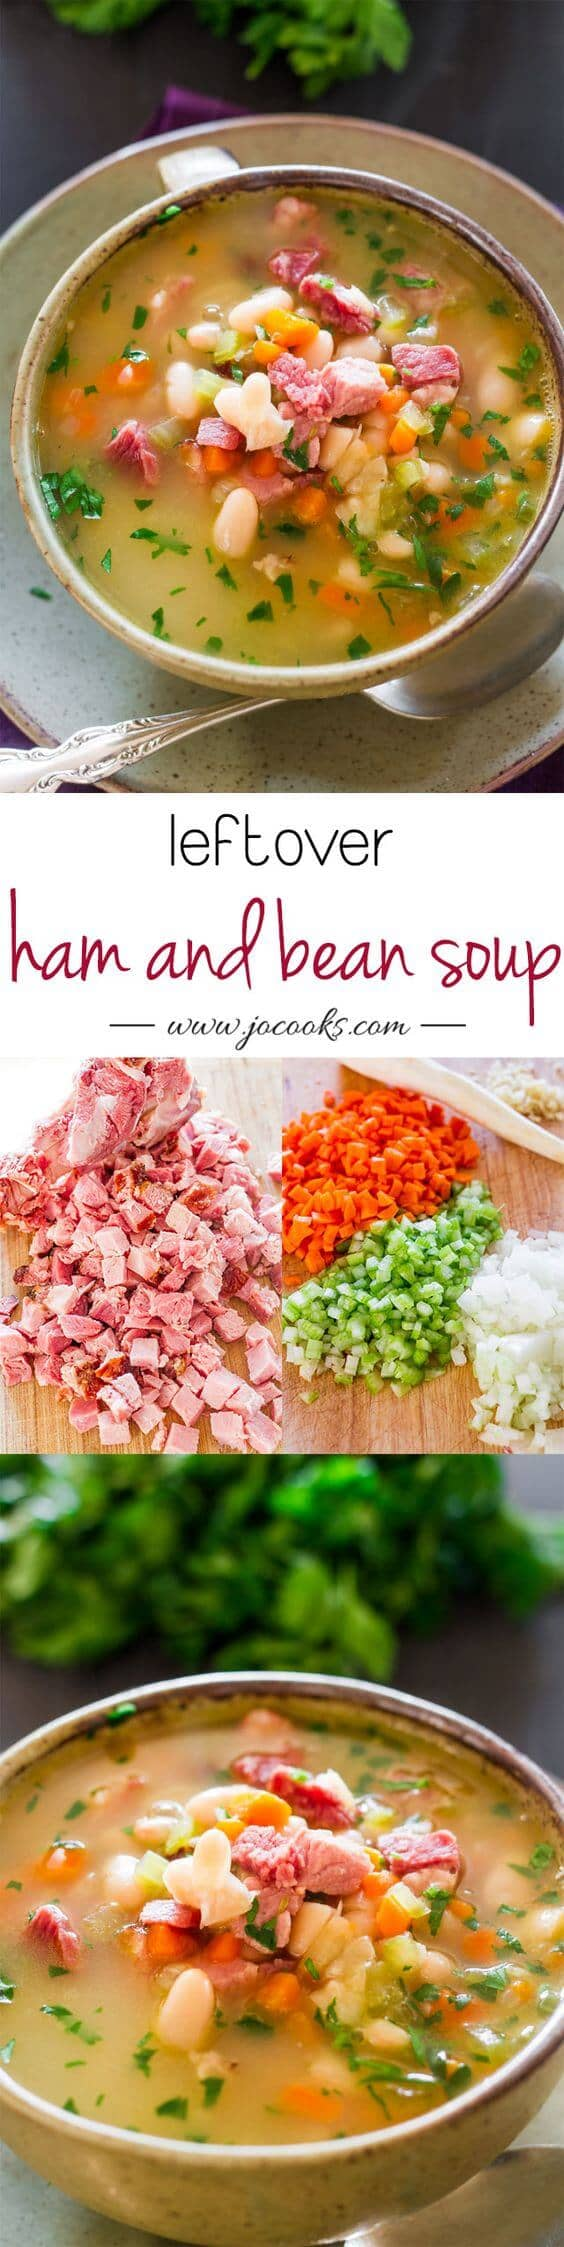 Use Leftovers Wisely with Ham and Bean Soup